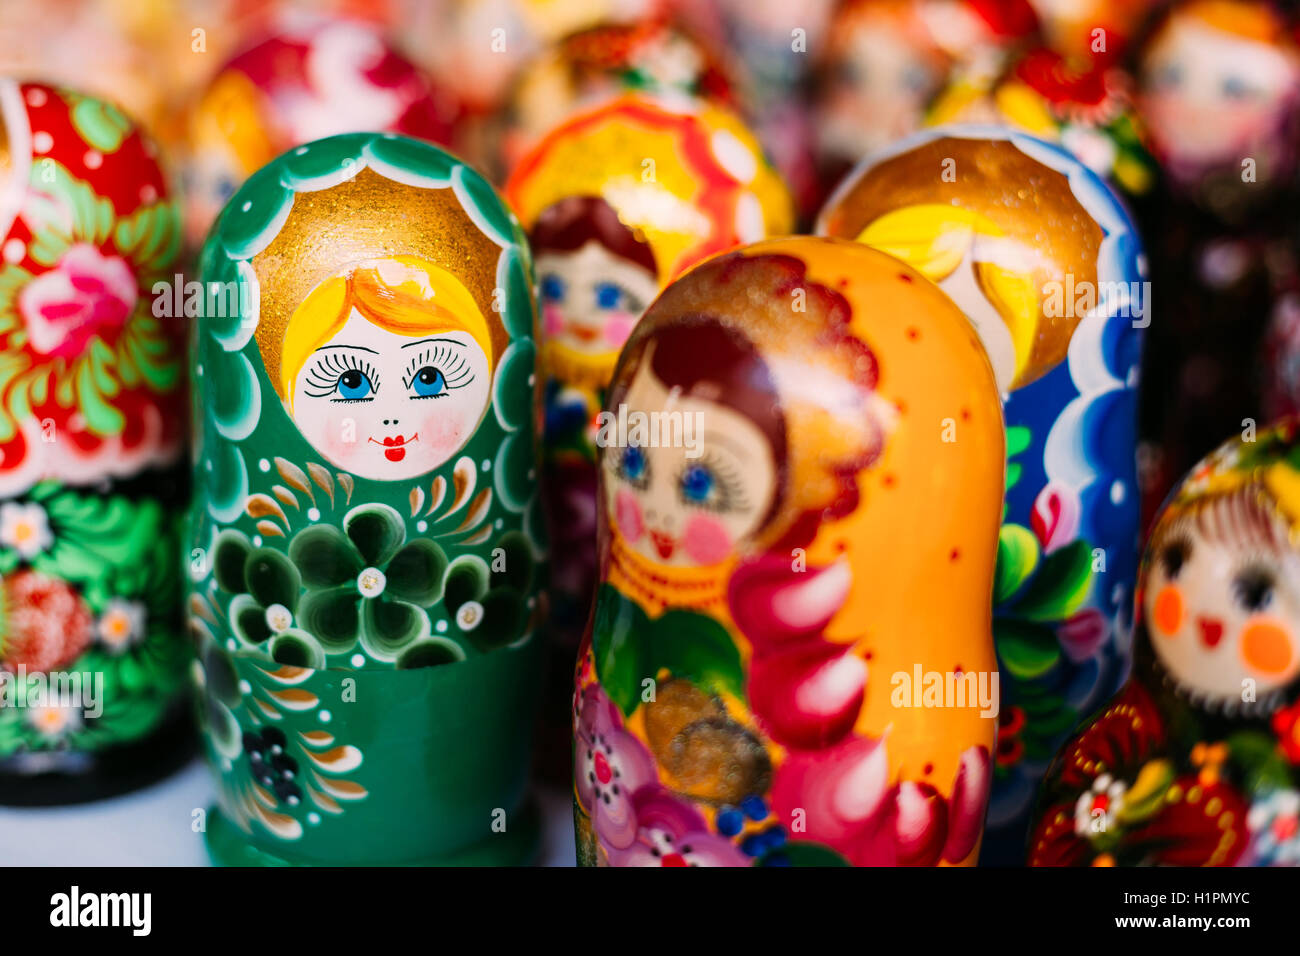 Close View Of The Varicoloured Matryoshka, The Traditional Russian Nesting Dolls, The Famous Old Wooden Souvenir - Stock Image